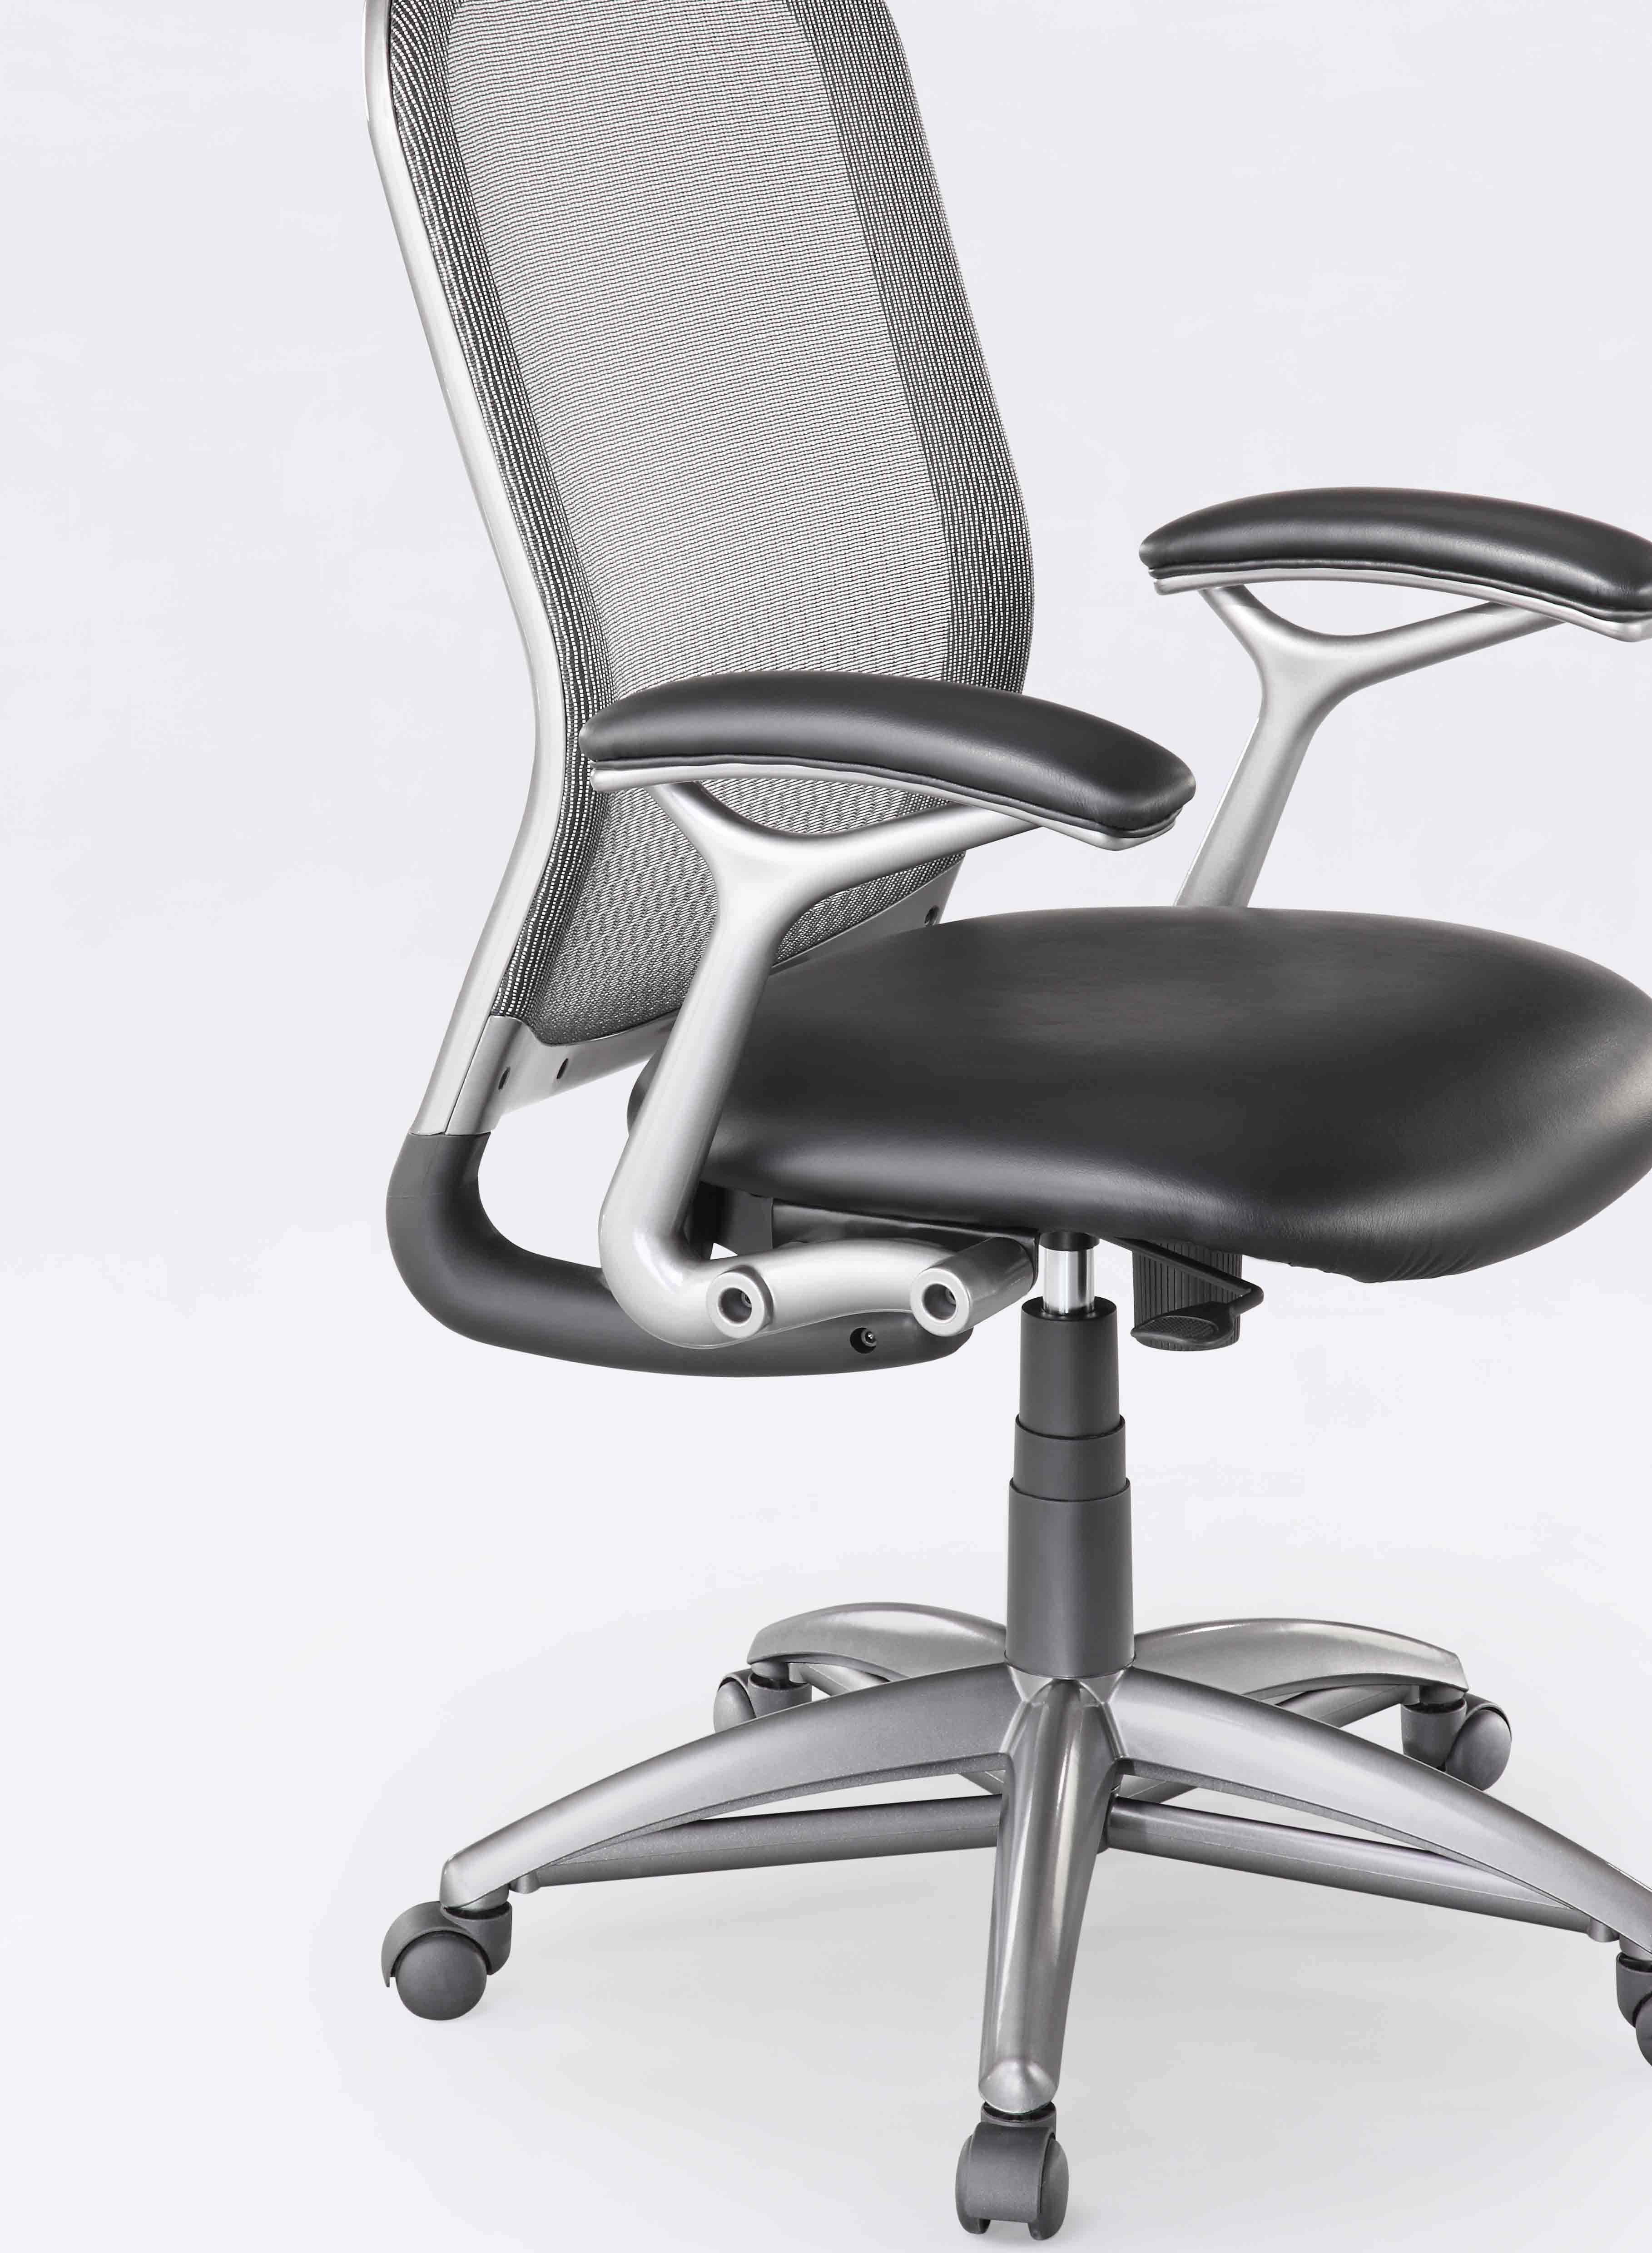 Hazz Design love this base for an office chair was $179 at